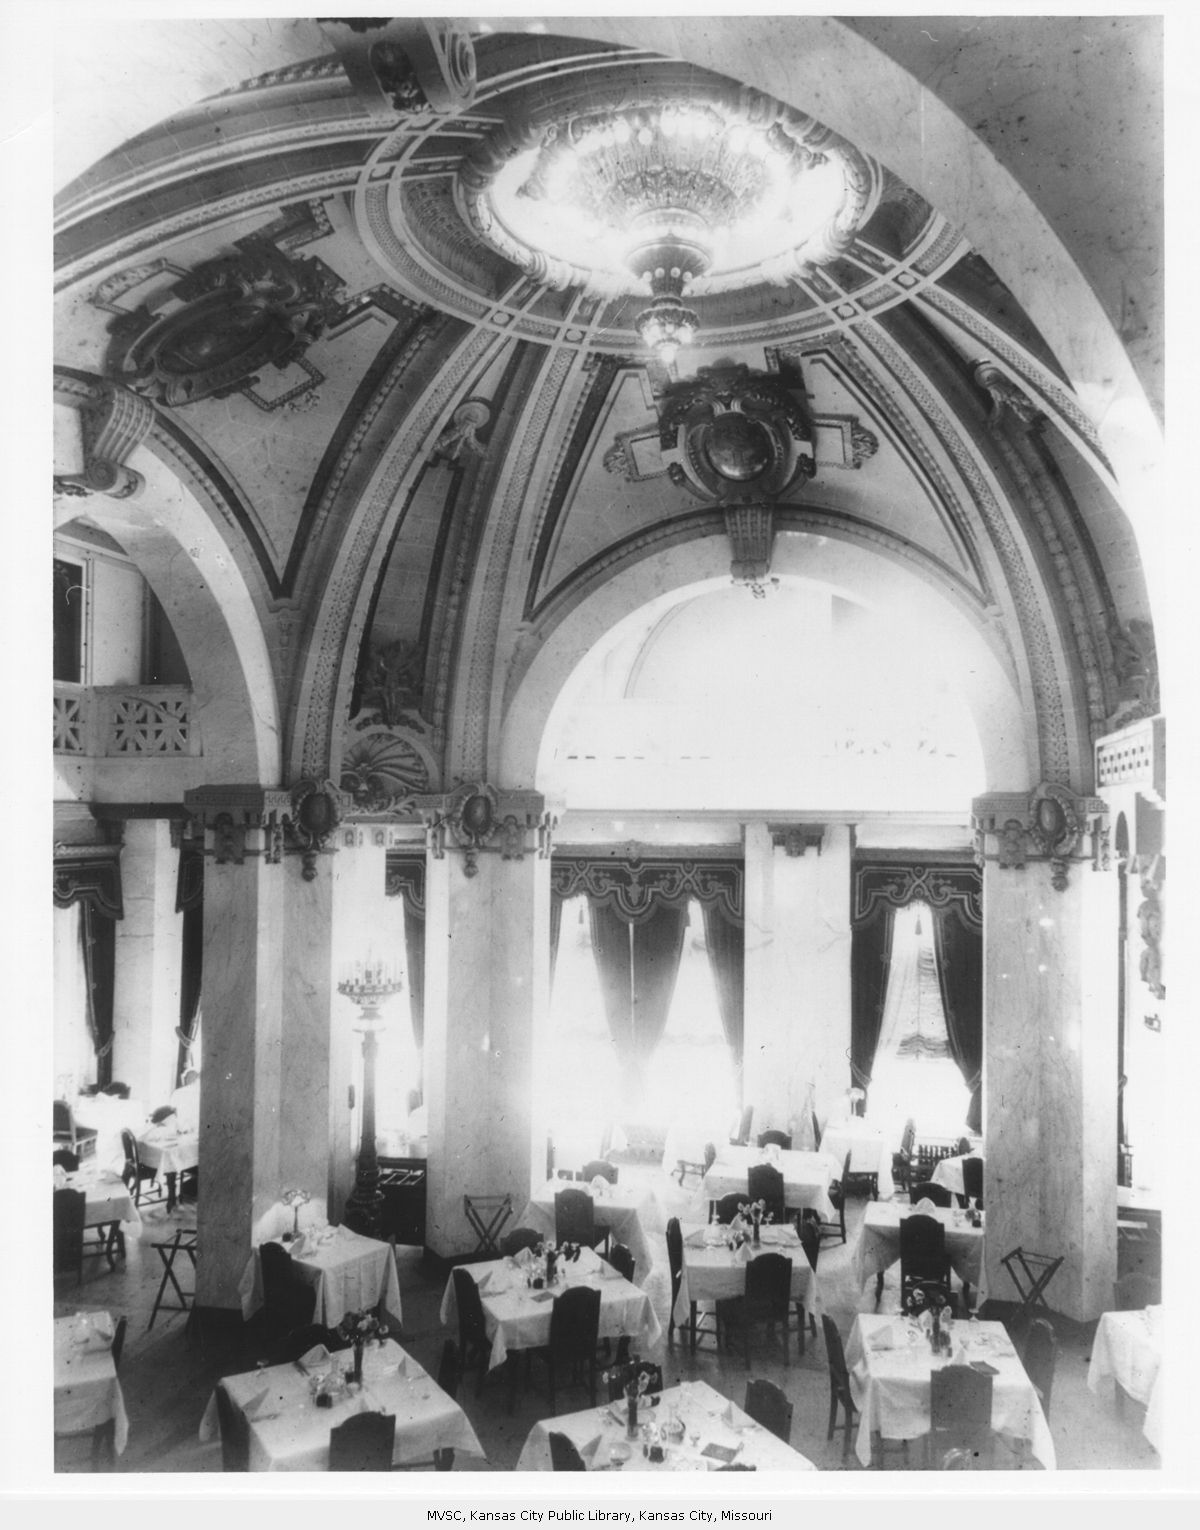 Dining hall in 1926. Image courtesy of the Missouri Valley Special Collections.